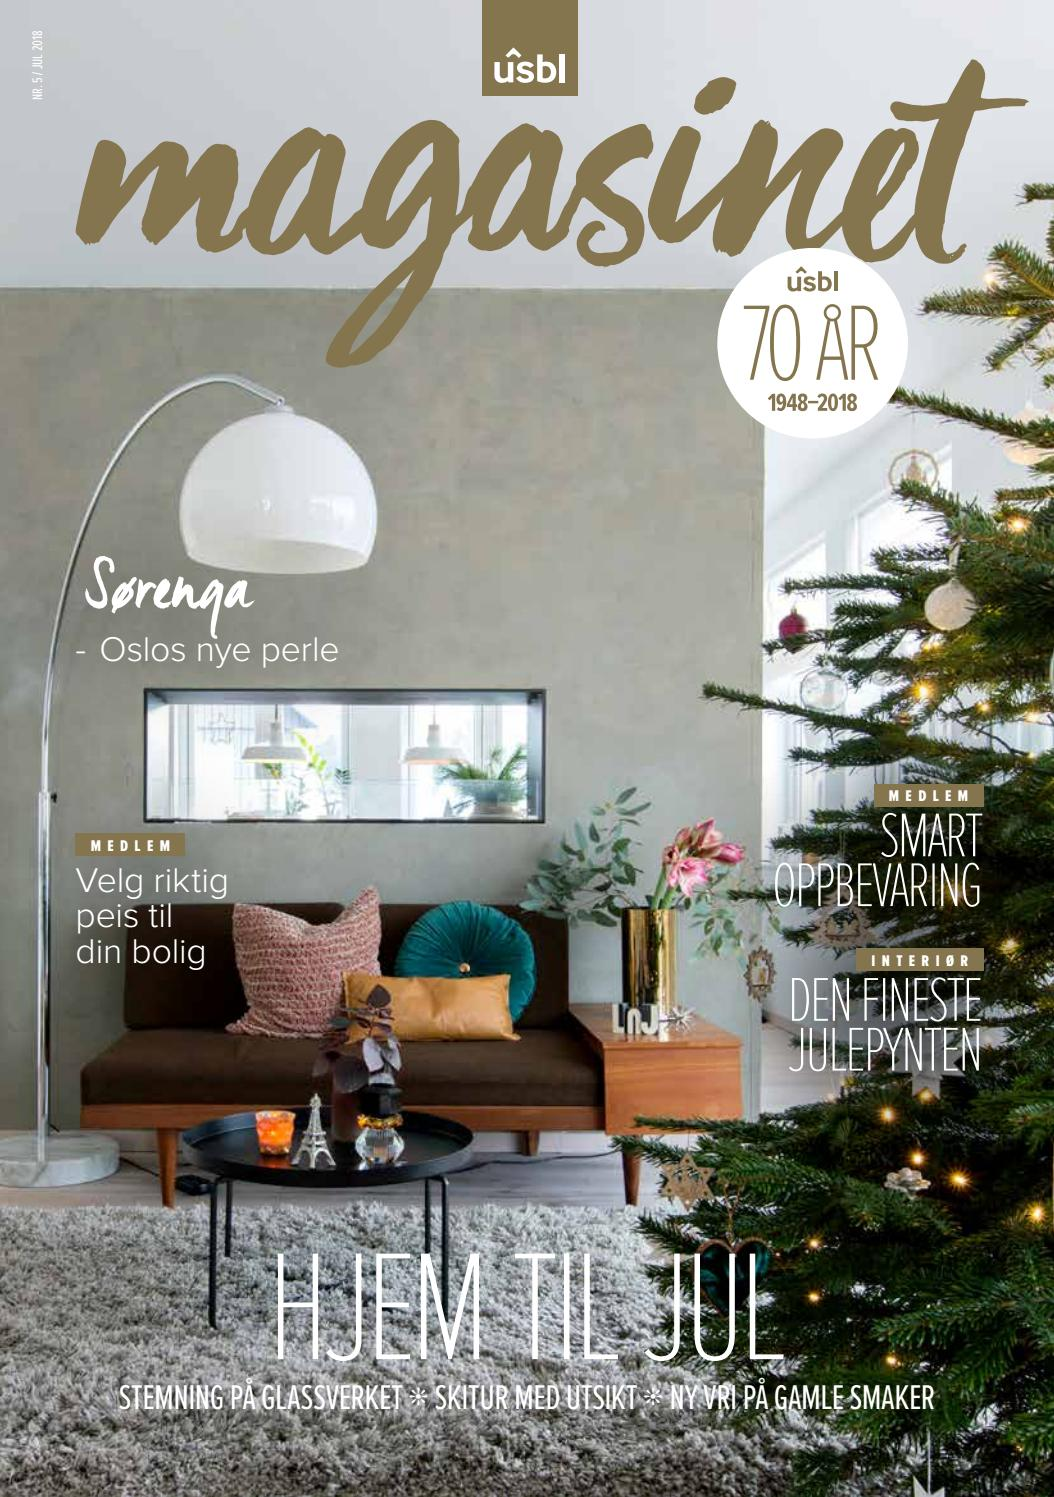 1fb5c77f Usbl-magasinet nr. 5 2018 by Usbl-magasinet - issuu